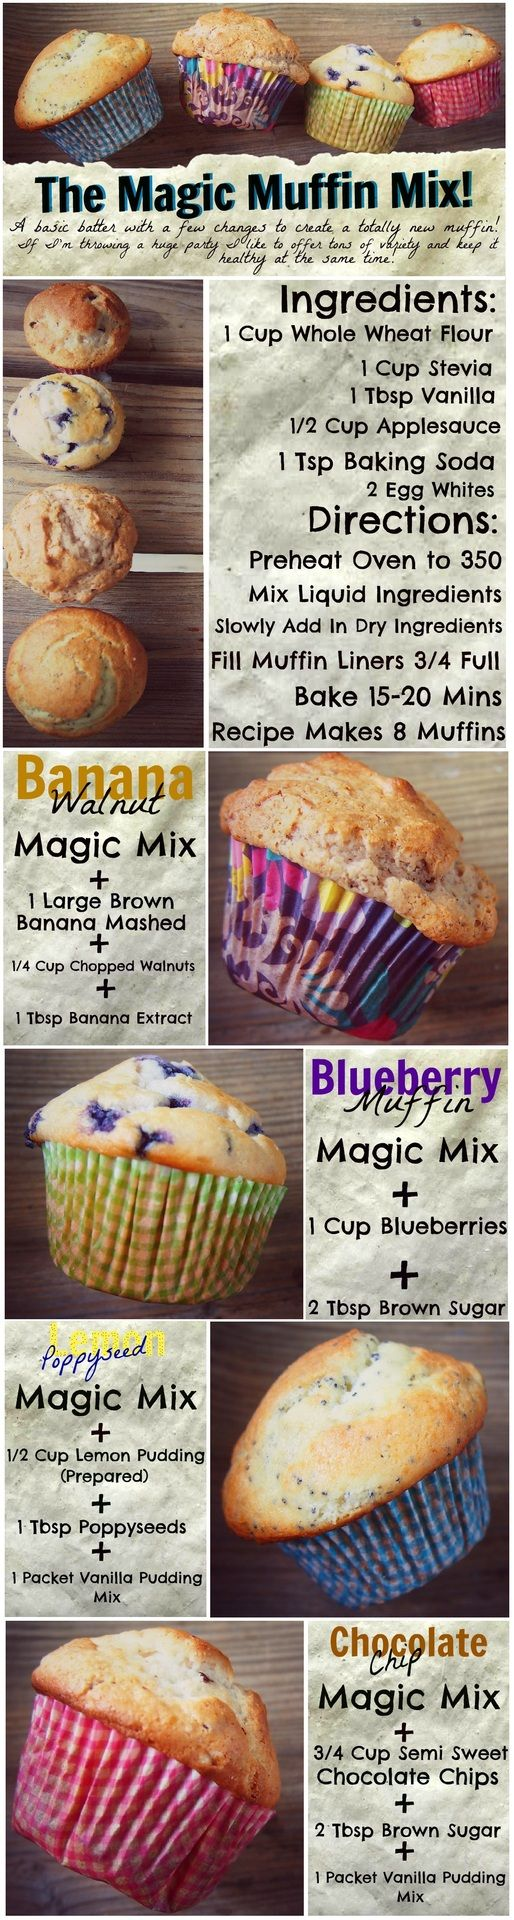 magic muffin mix!Muffin Recipes, Eggs White, Sweets, Magic Muffins Mixed, Breakfast, Food, Yummy, Muffins Recipe, Healthy Muffins